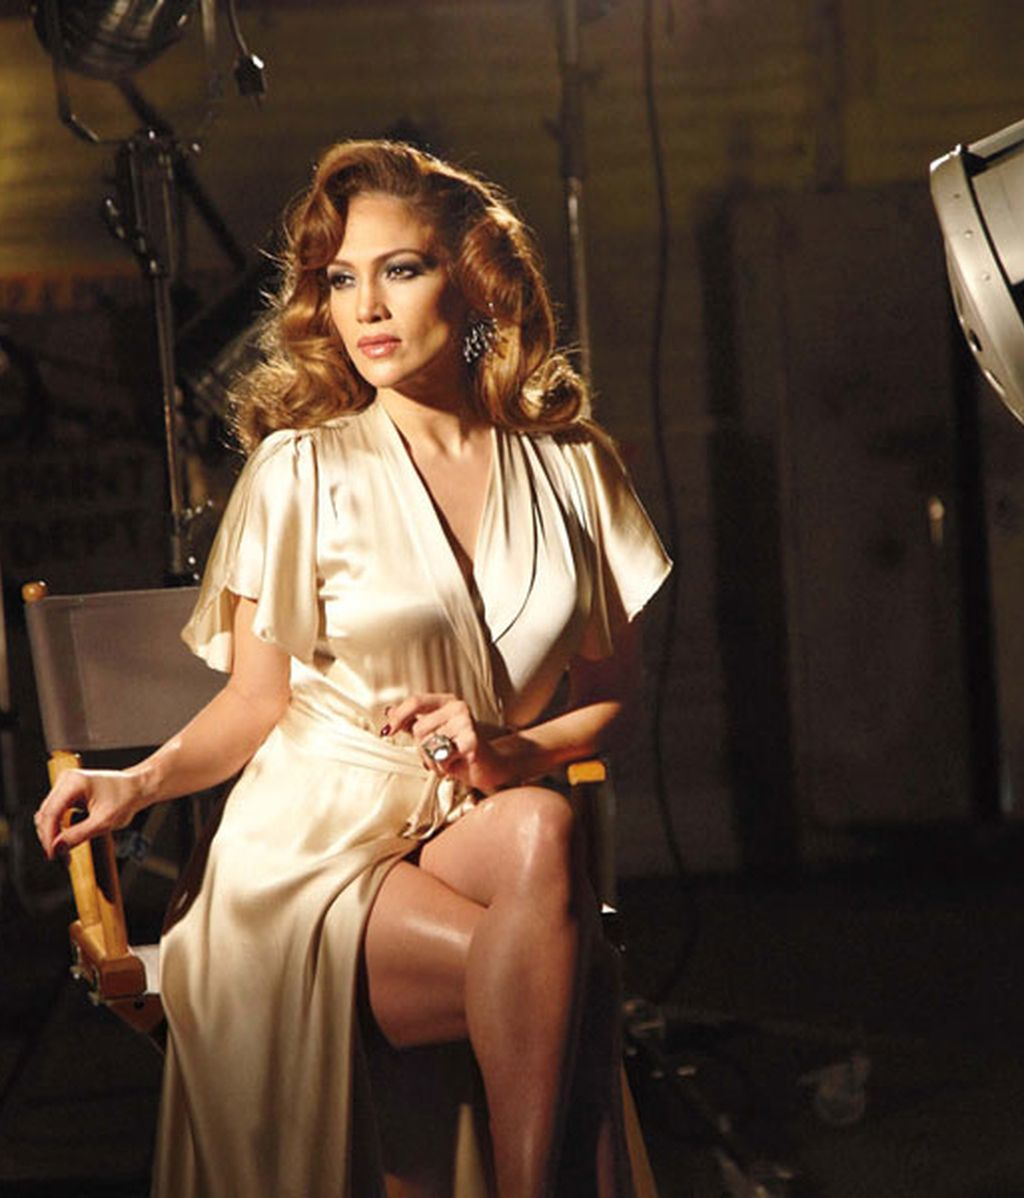 Jennifer Lopez presenta su nuevo perfume 'With Love & Light'